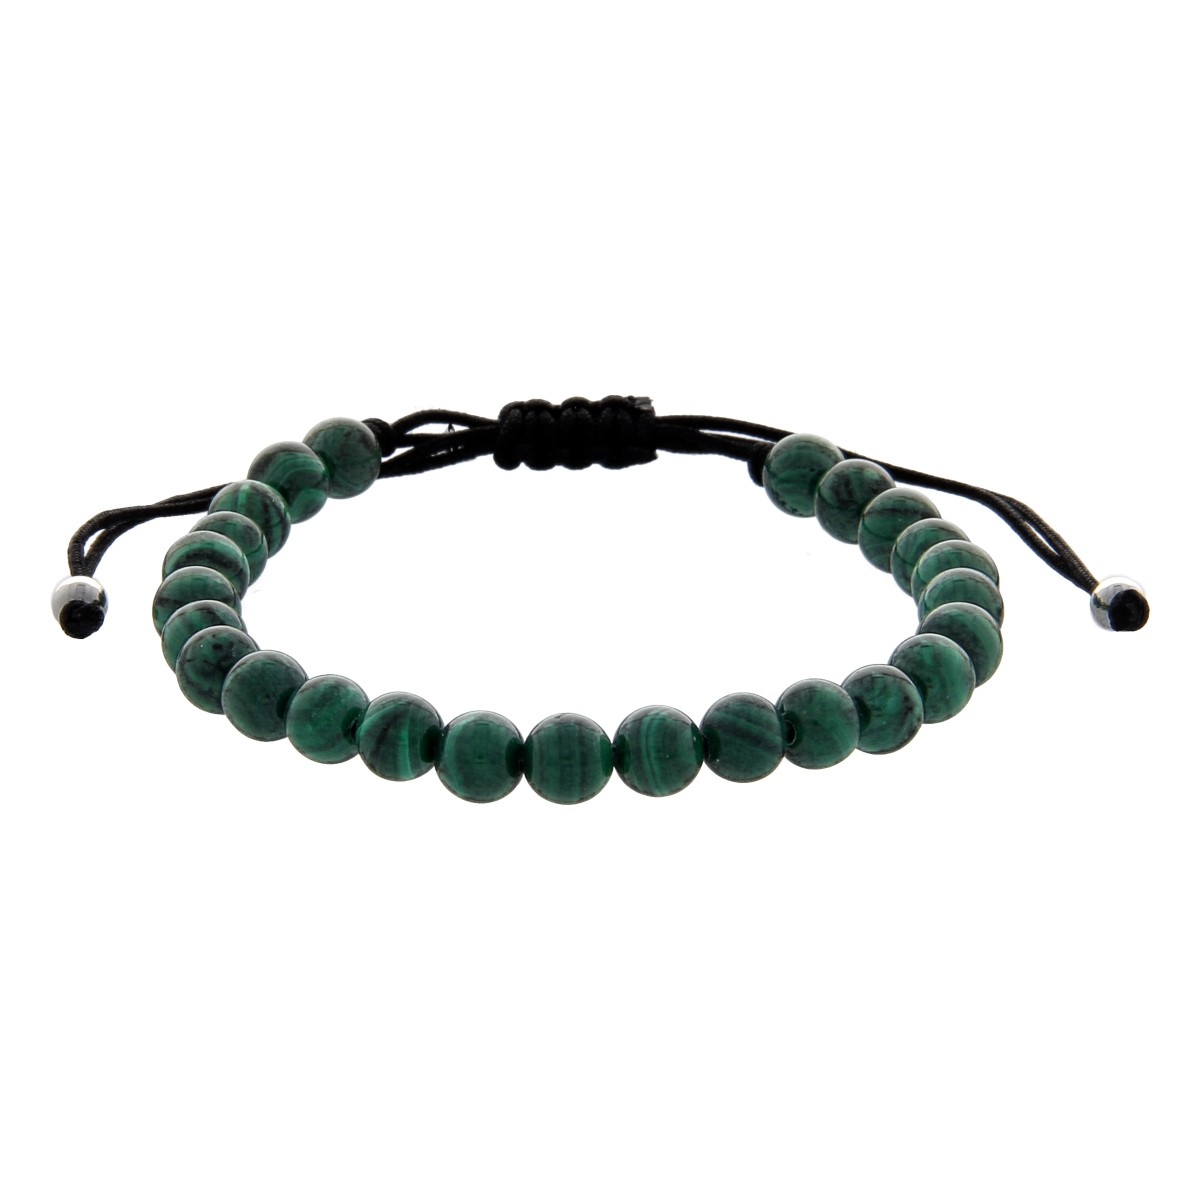 Black String Luxury Bracelet with Malachite Pearls